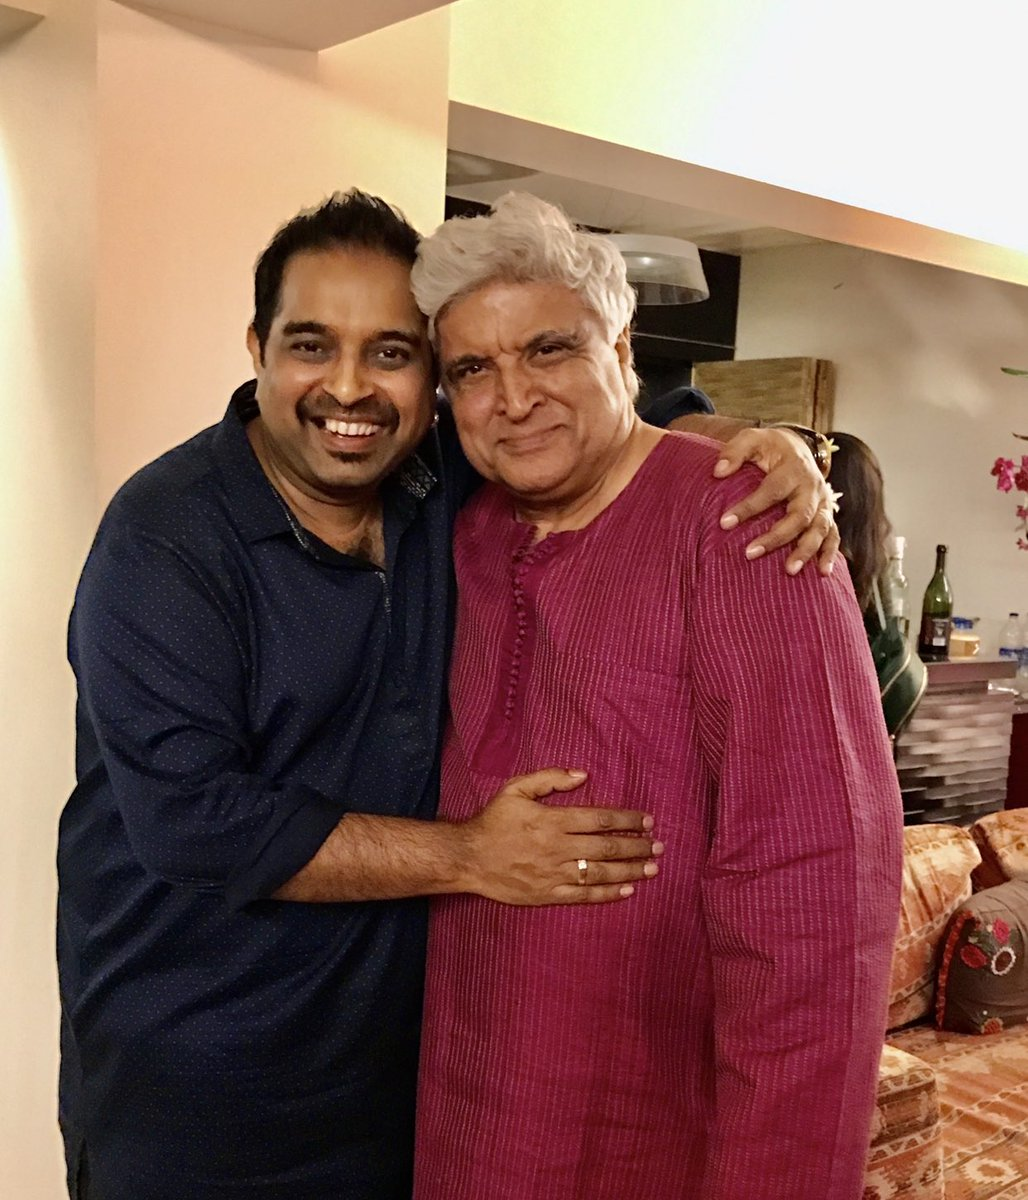 Heartiest congratulations to the one and only @Javedakhtarjadu for receiving the prestigious Richard Dawkins award 2020 for critical thinking ,holding religious dogma upto scrutiny , advancing human progress and humanist values .He is the only indian to receive it ever ! https://t.co/cHFn2gJMEK